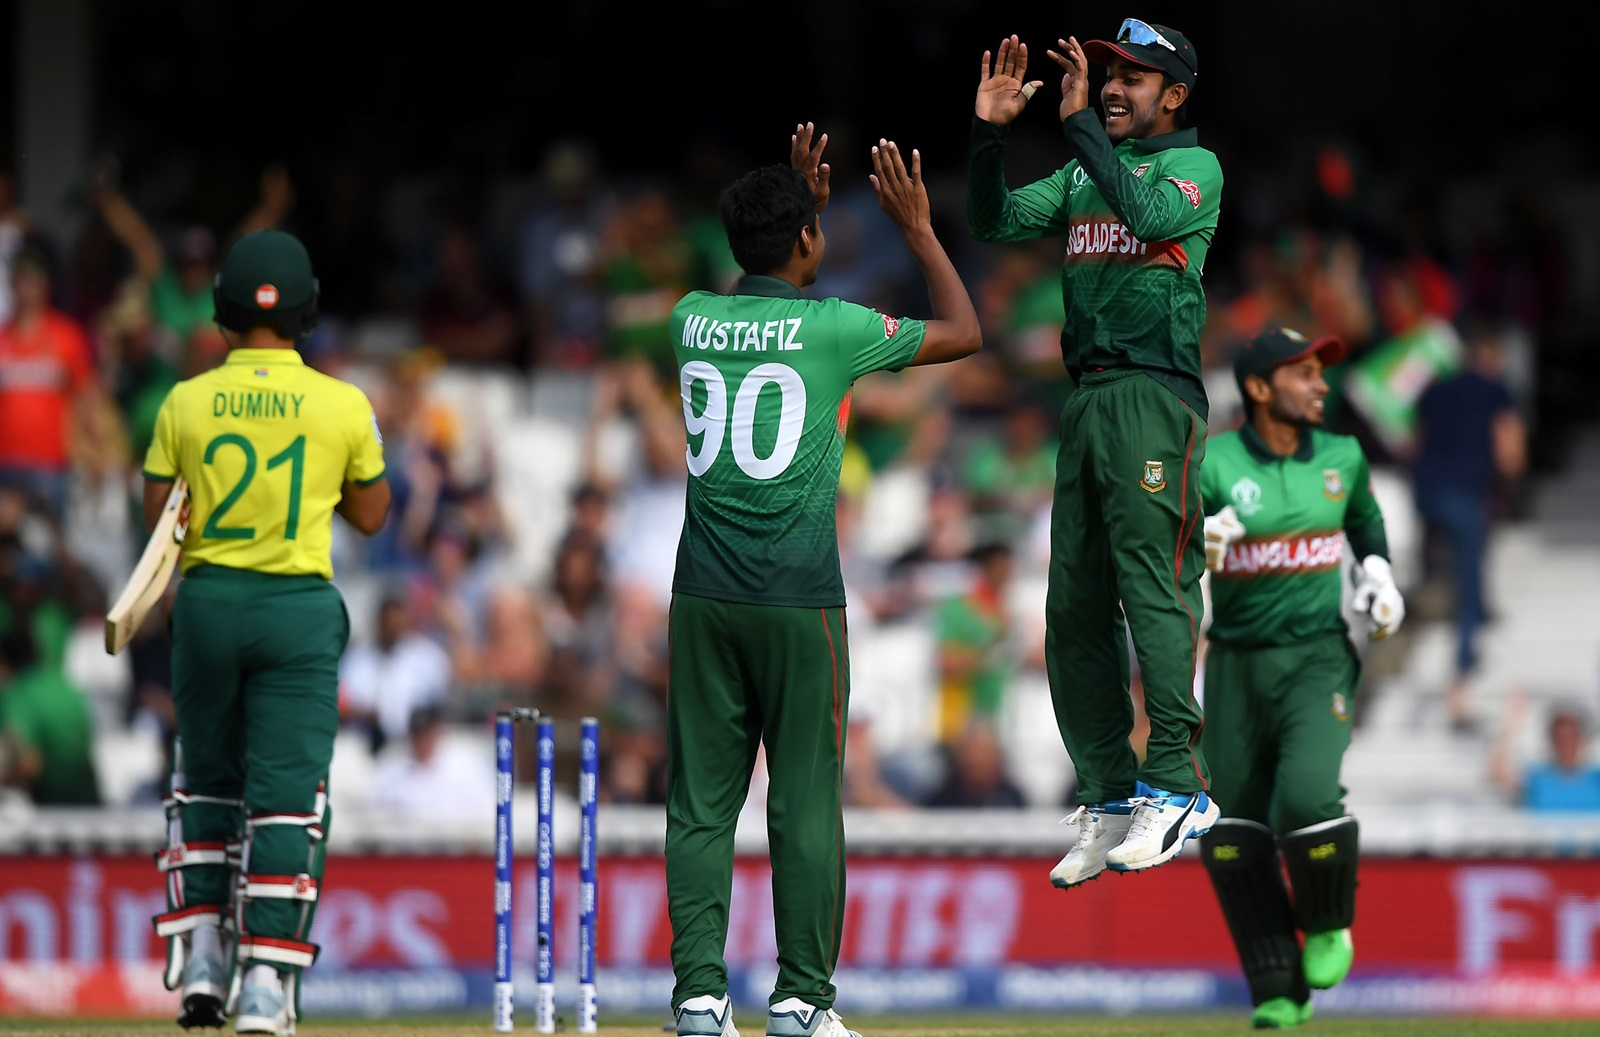 Bangladesh beat South Africa by 21 runs in ICC World Cup